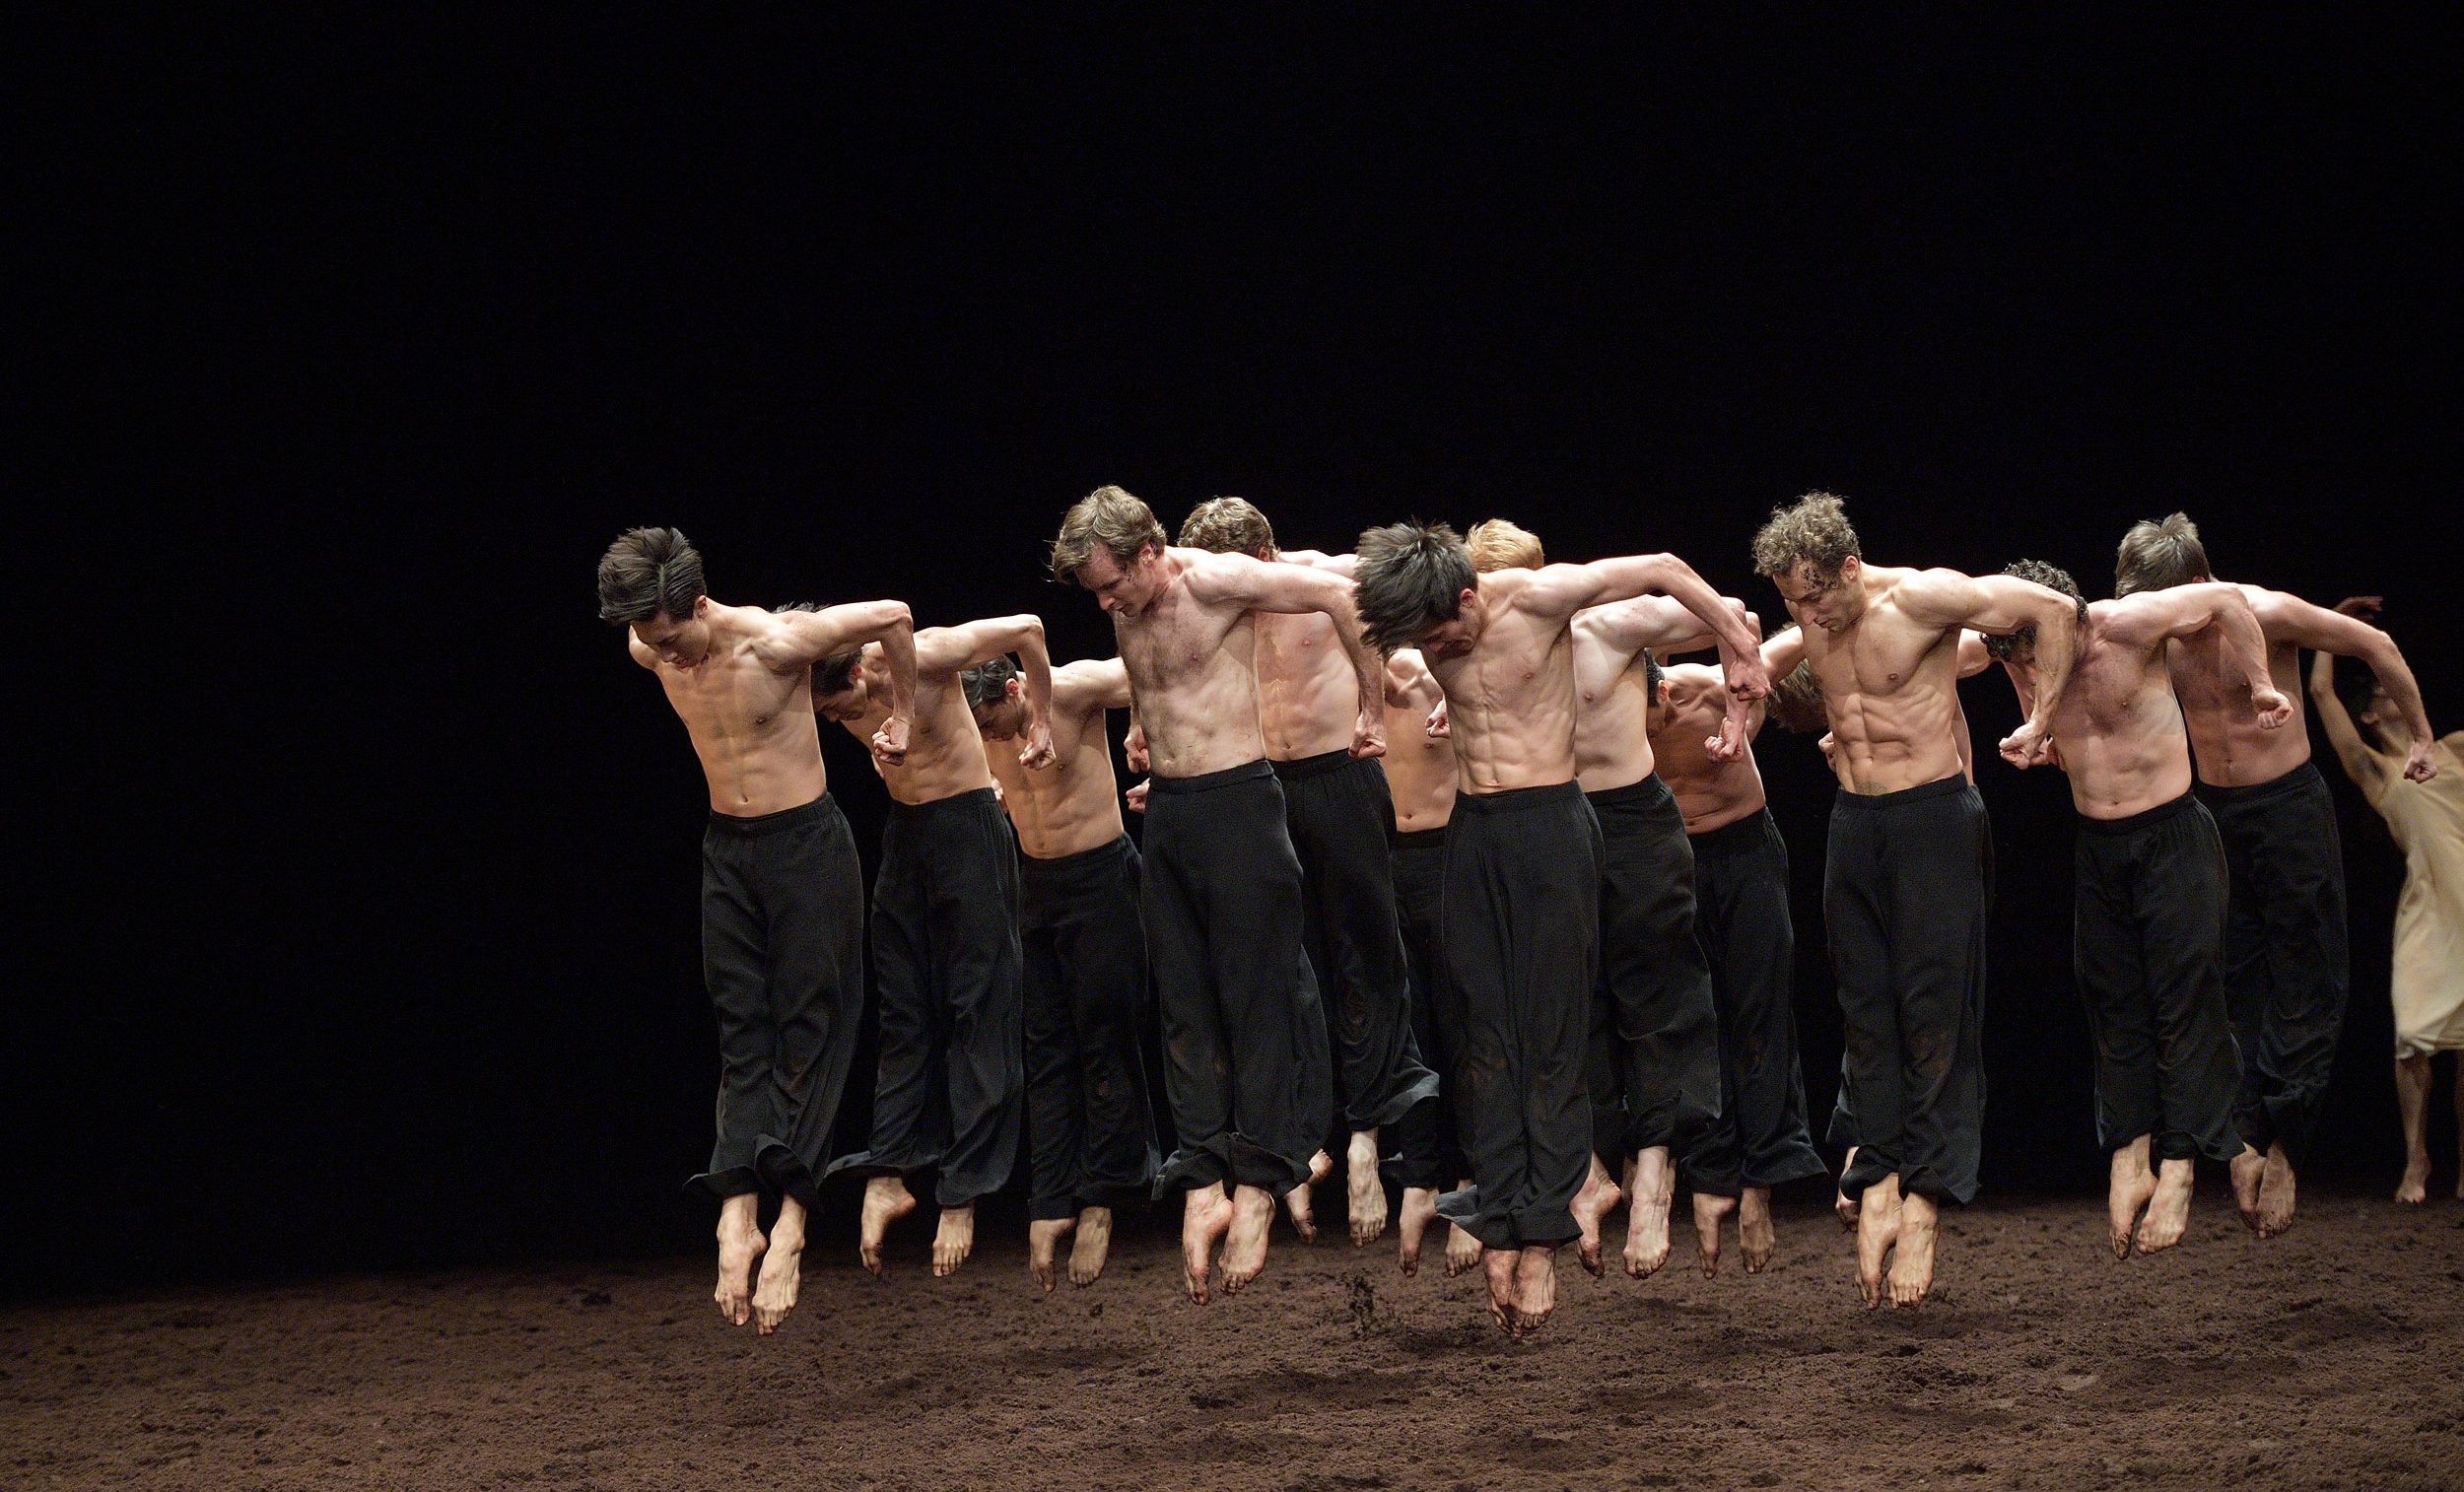 Pina-Bausch's-Le-Sacre-du-printemps-by-English-National-Ballet-(c)-Laurent-Liotardo-(3)-2500px